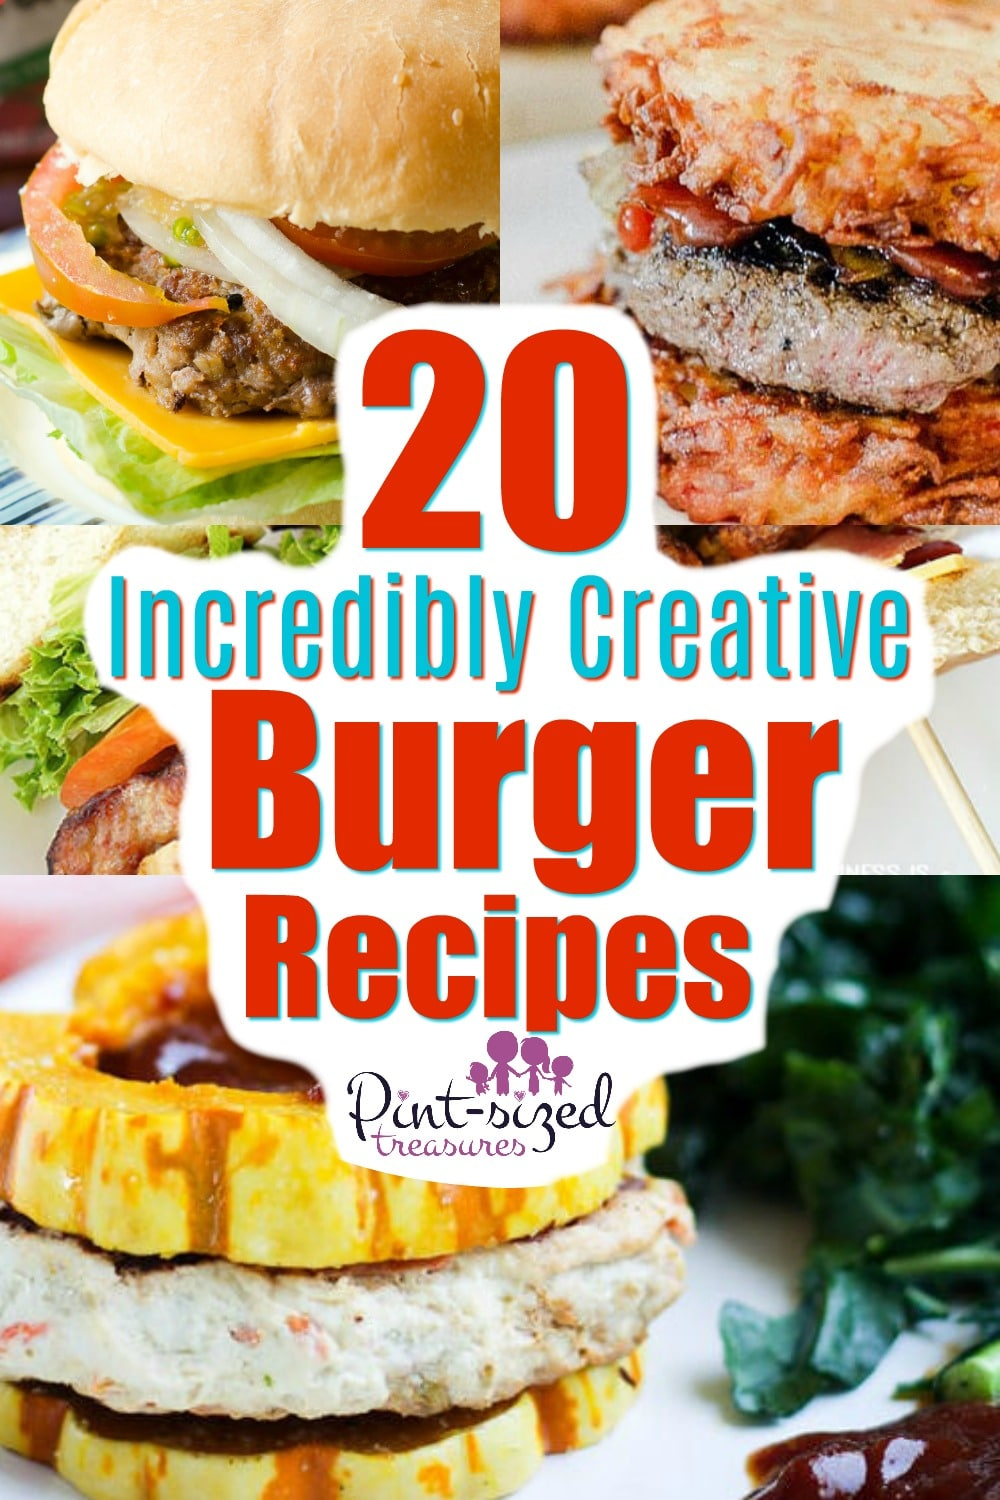 Incredibly creative burger recipes you'll absolutely love